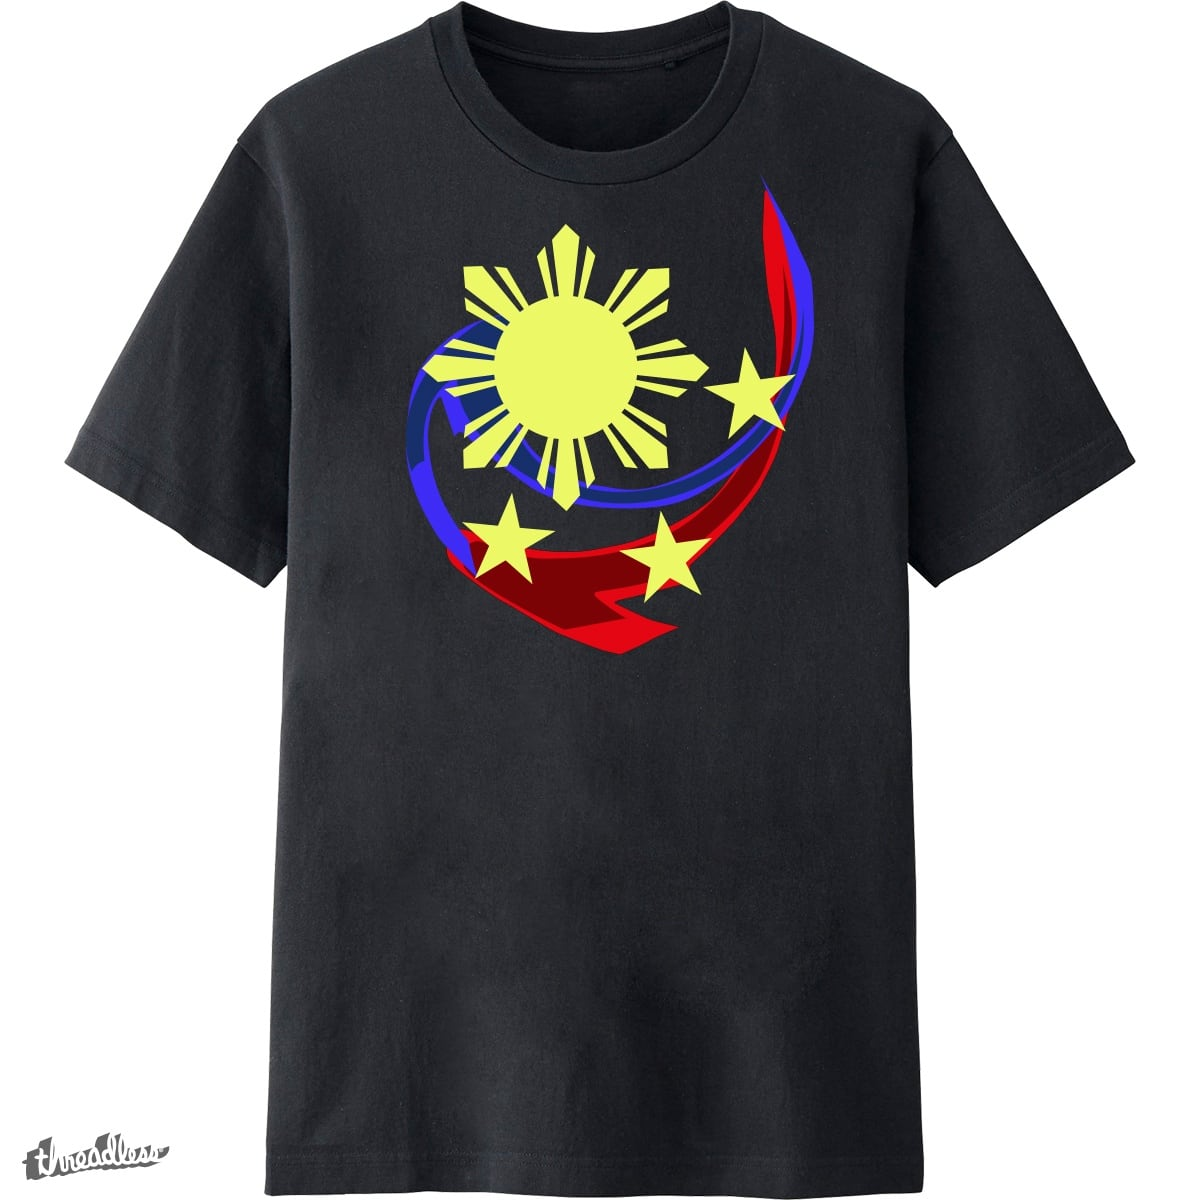 Score philippines flag design by jcarvajal on threadless for Philippines t shirt design